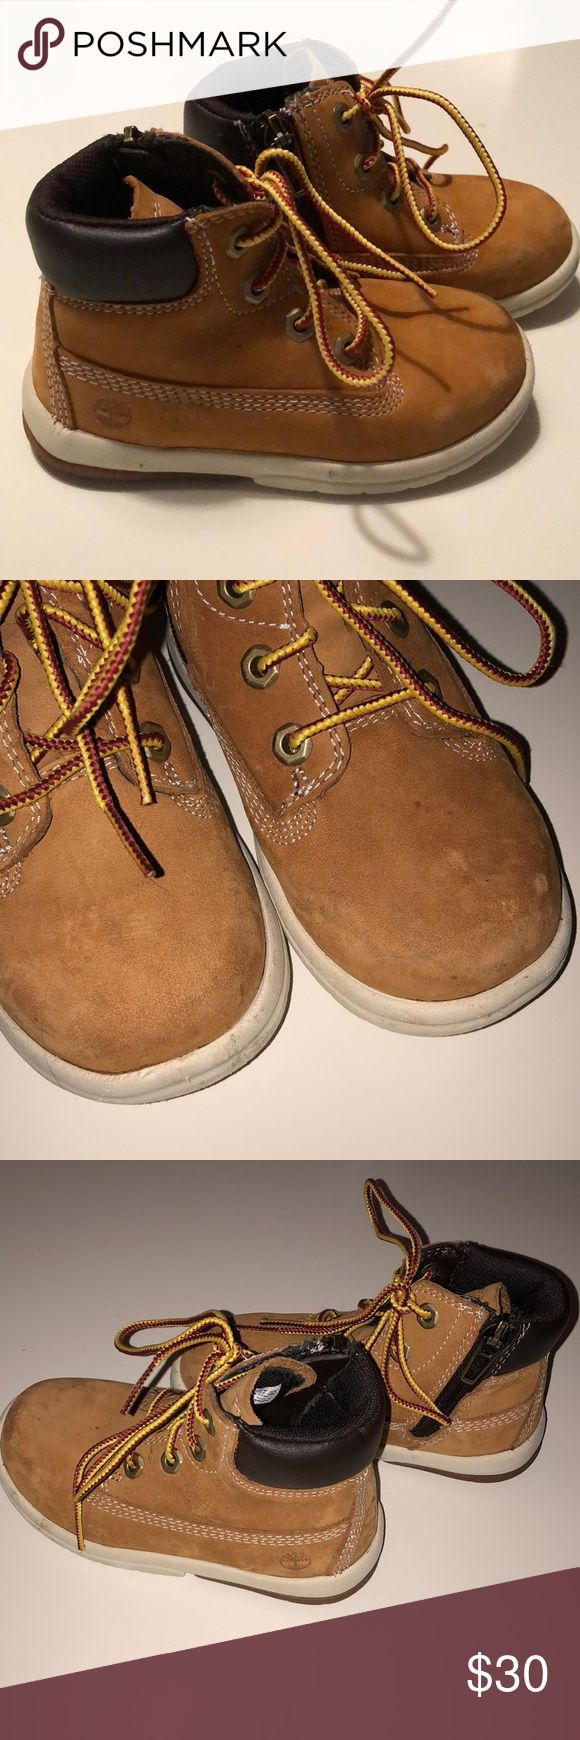 Toddler Timberland Boots Zip sides make them easy to get on and off. Only worn a couple of times. A few scuffs on the toes and marks that can probably clean off. See photos Timberland Shoes Boots